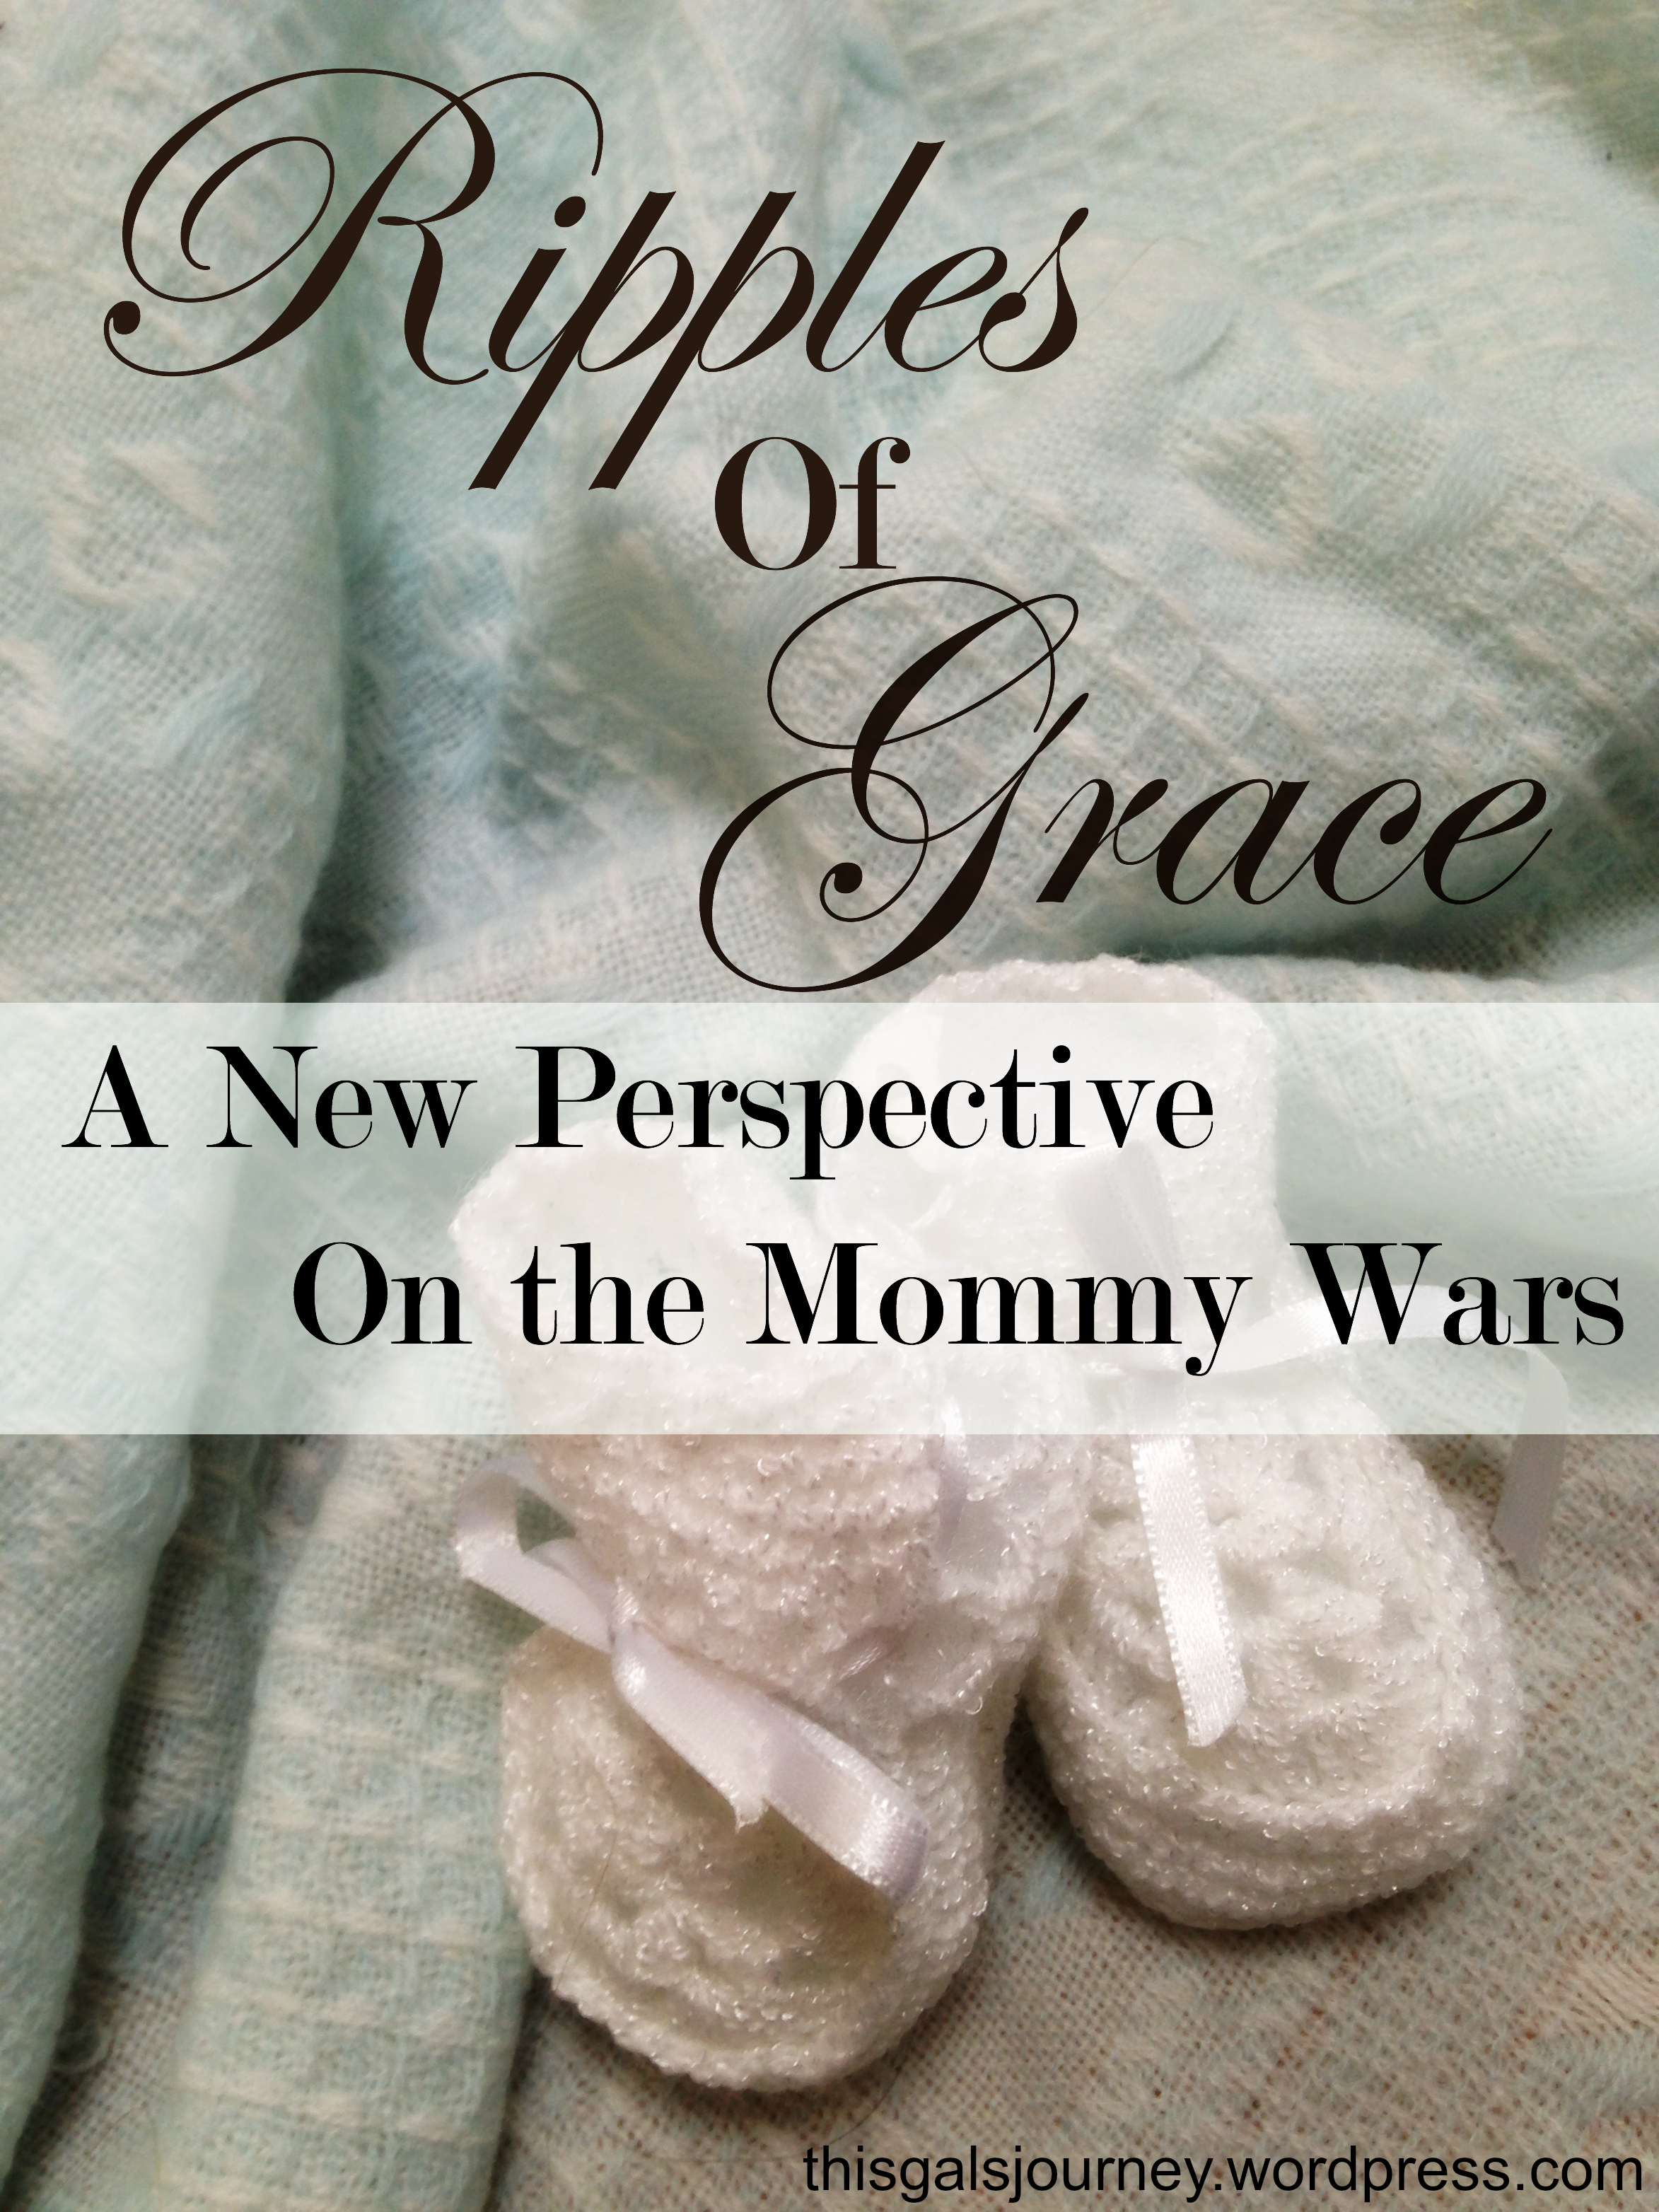 Ripples of Grace – A New Perspective on the Mommy Wars